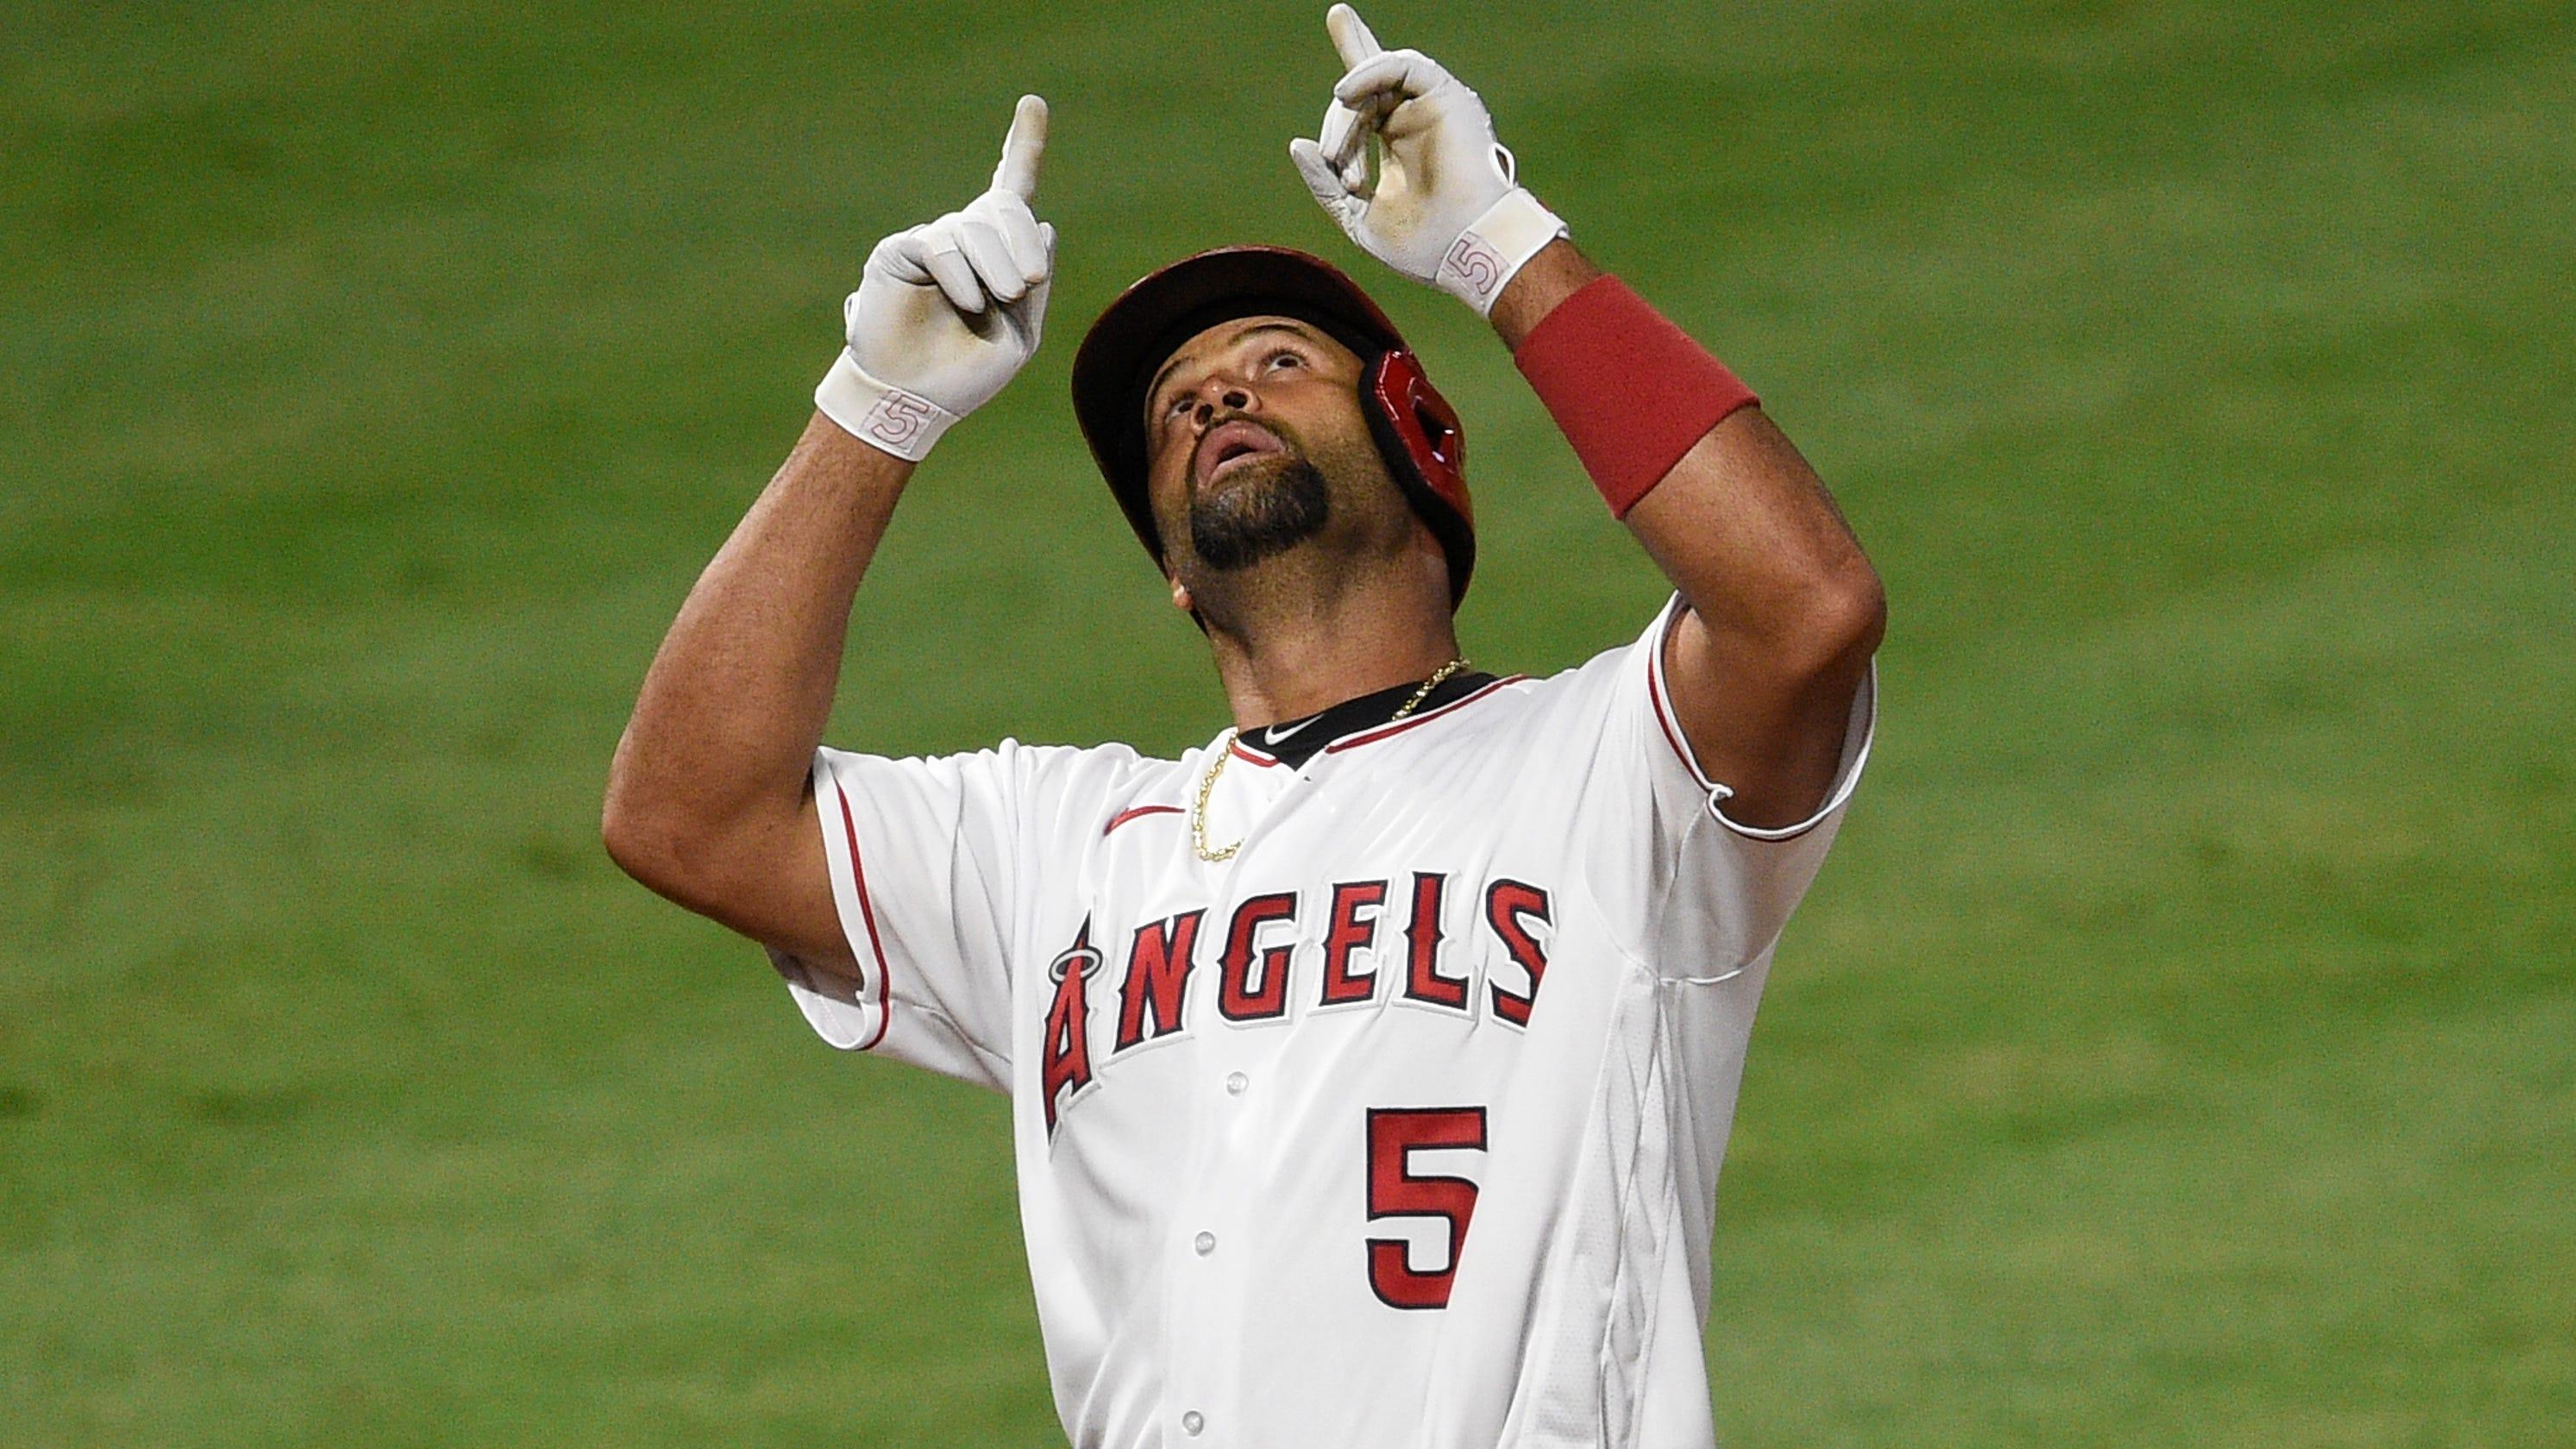 Albert Pujols hits career home run No. 661, passes Willie Mays for fifth place on all-time list